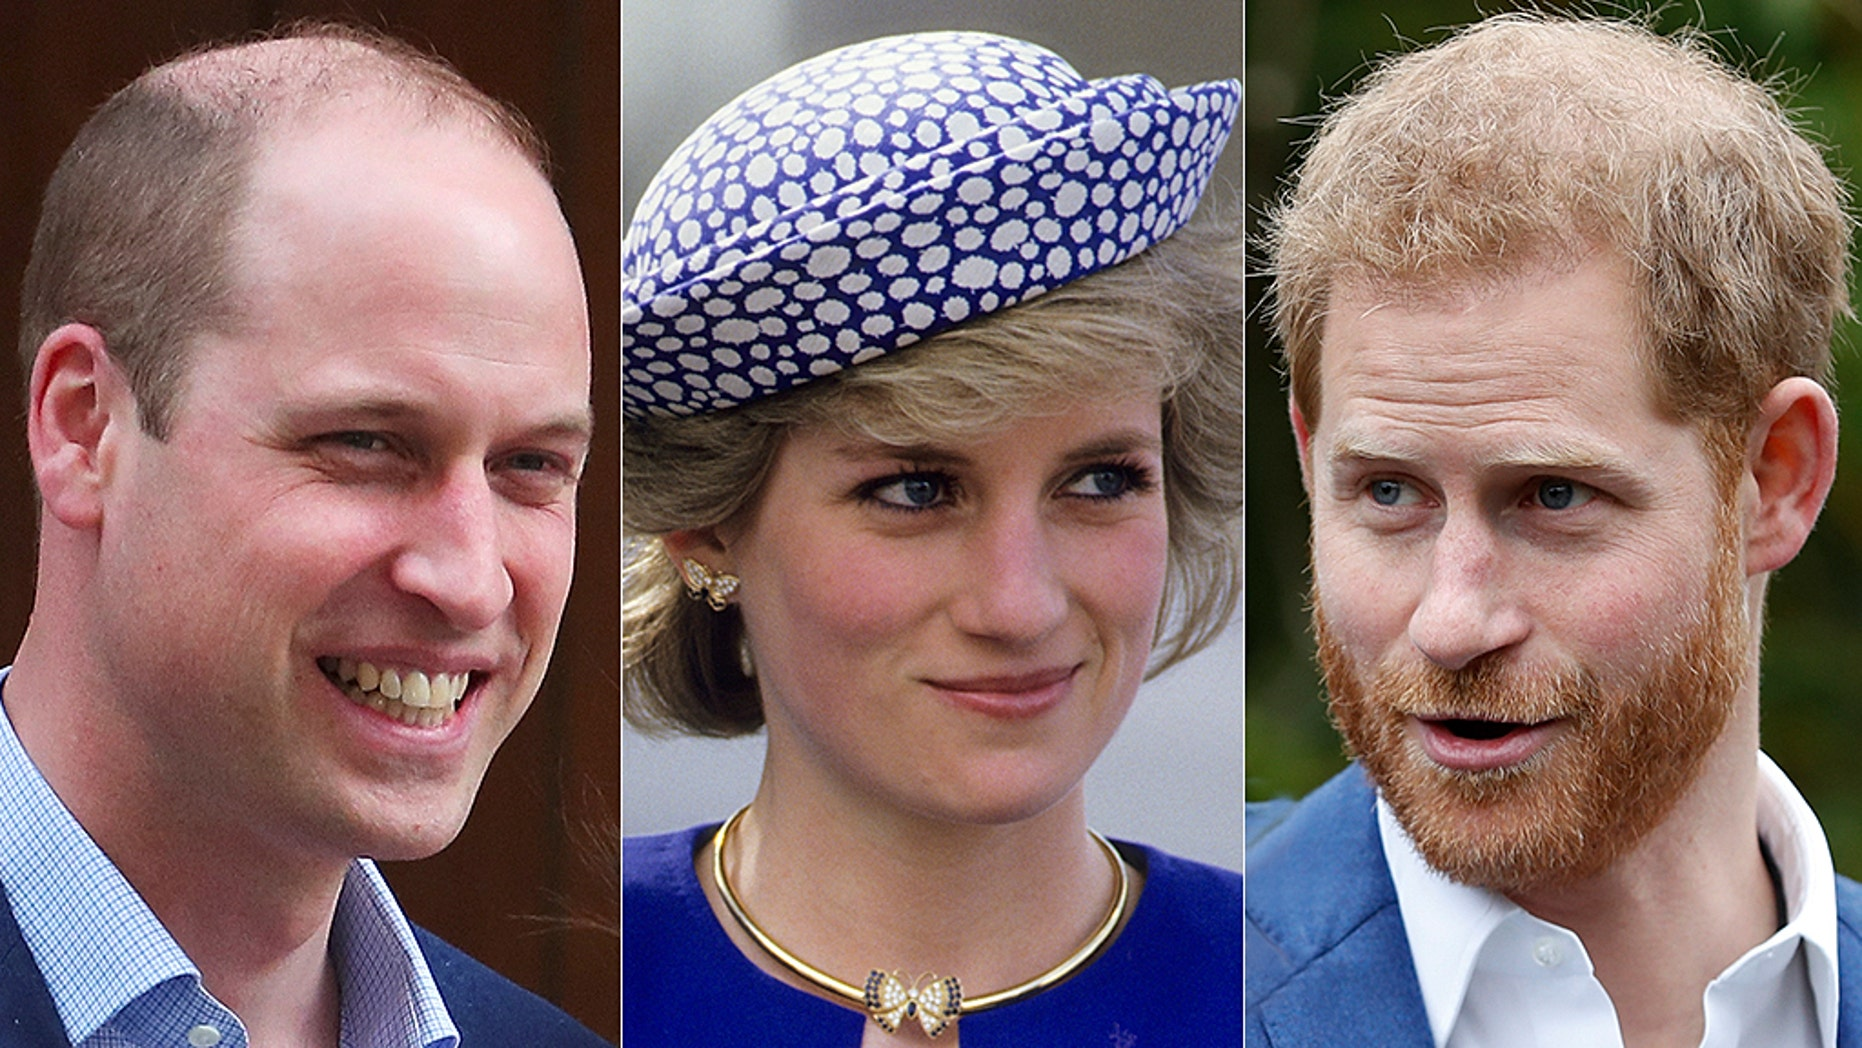 Prince Harry will get some much-needed inspiration from big brother Prince William and their late mother Princess Diana as he navigates parenthood for the first time. — AP/Reuters